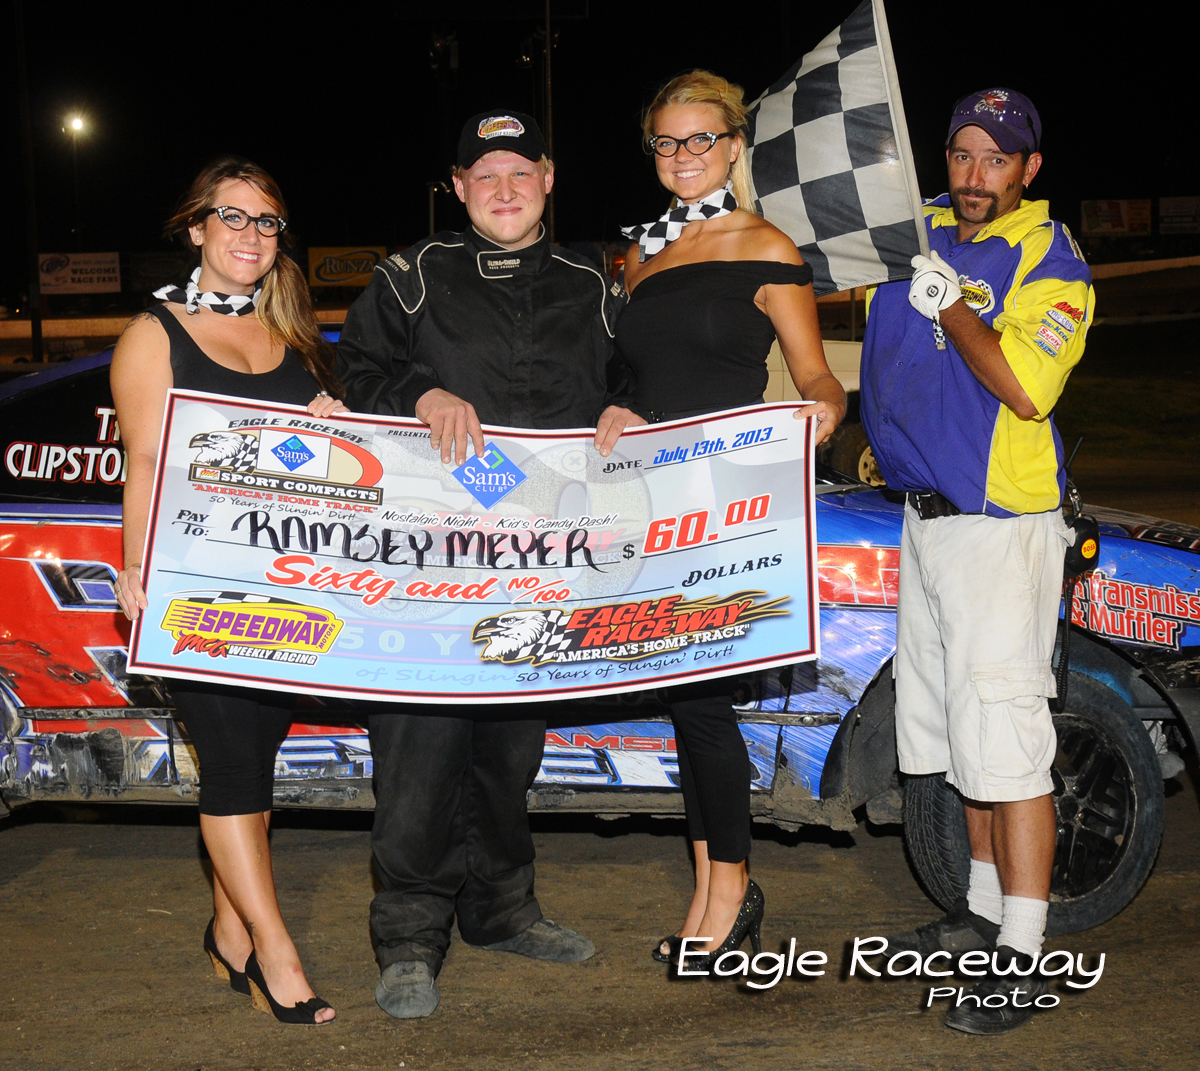 eagle-07-13-13-406-ramsey-meyer-with-miss-nebraska-cup-courtney-wulf-and-miss-nebraska-cup-finalist-elle-patocka-and-flagman-billy-lloyd